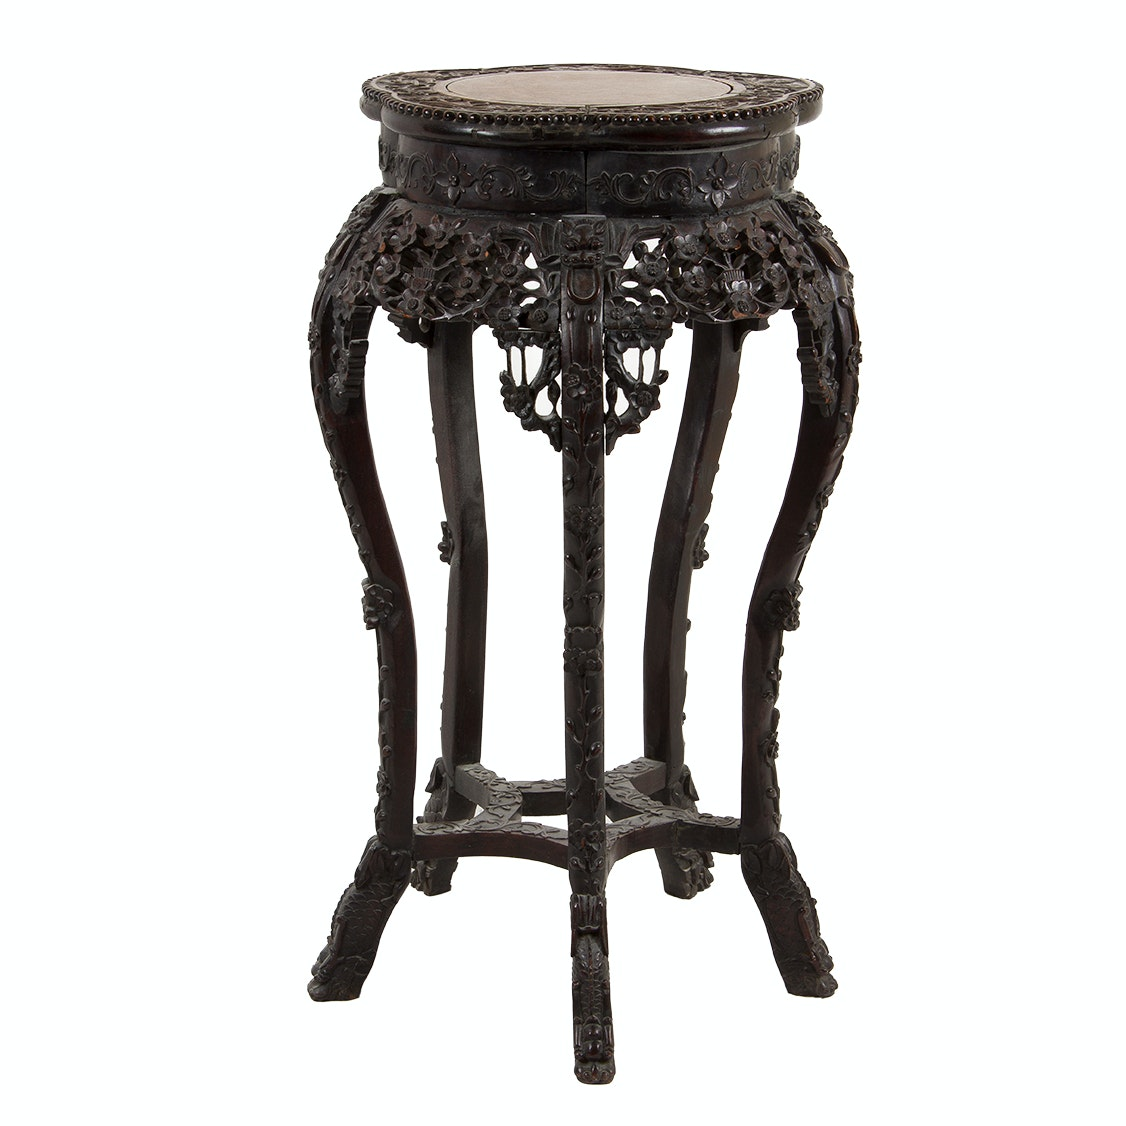 Early 20th Century Chinese Carved Rosewood and Marble Pedestal Table